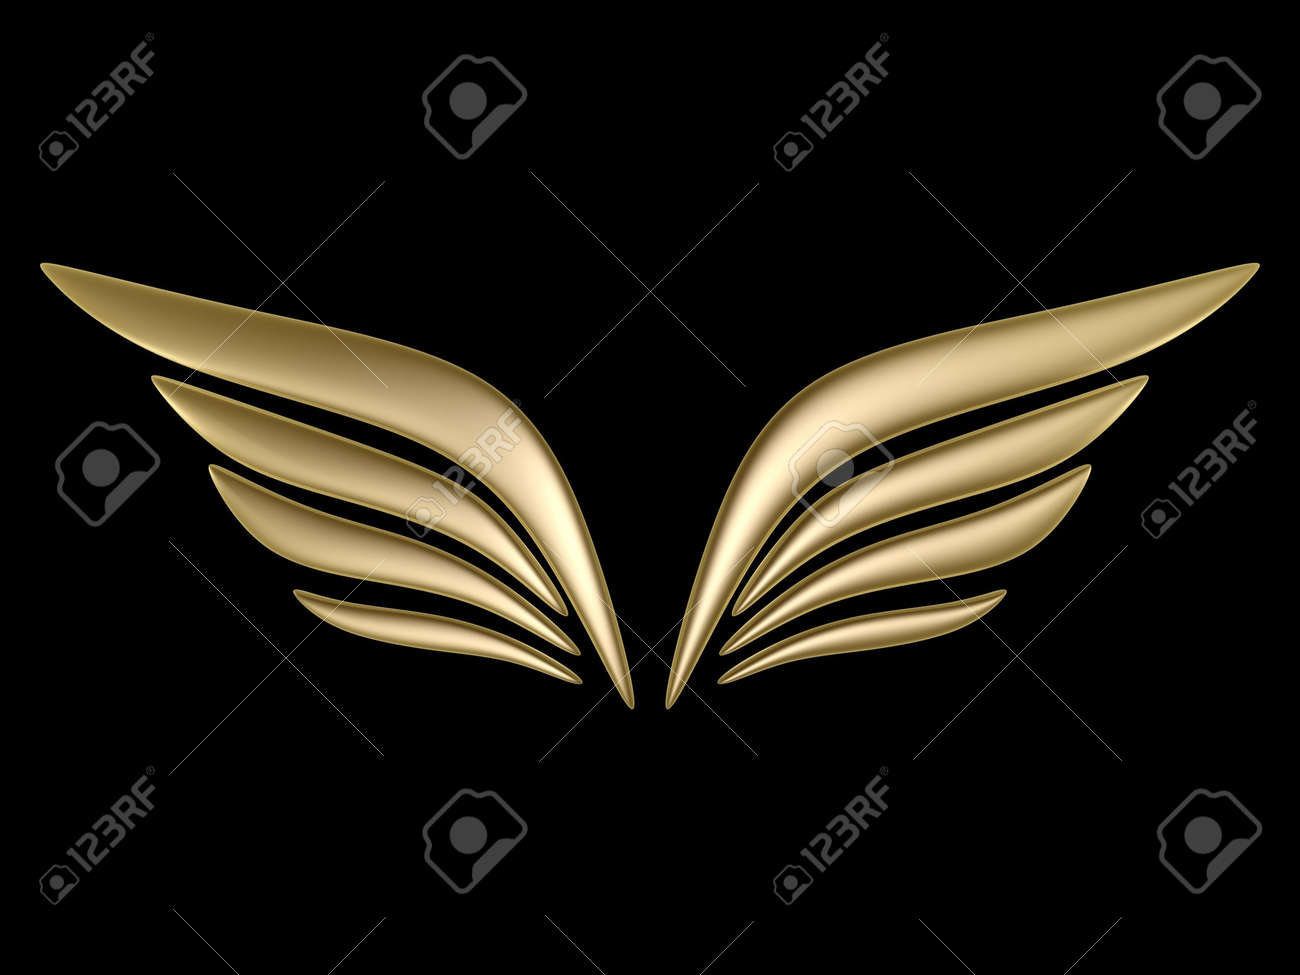 3d bird wing symbol isolated on black background stock photo 4764833